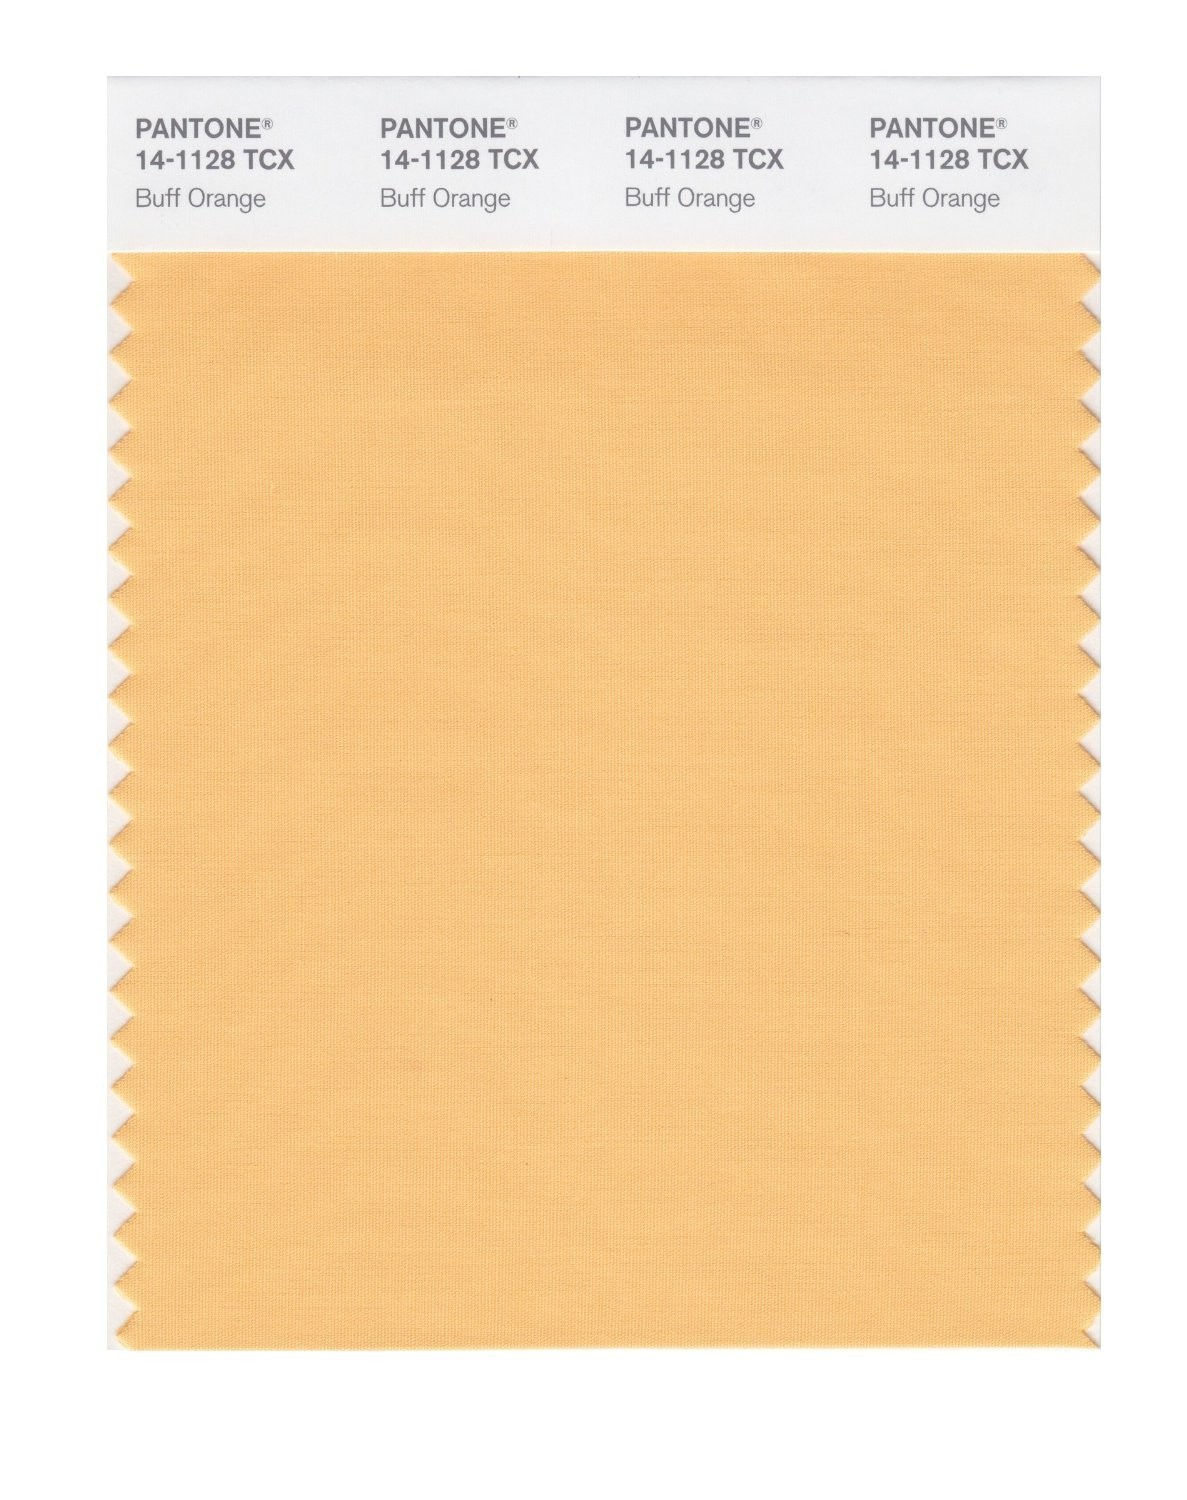 Pantone 14-1128 TCX Swatch Card Buff Orange